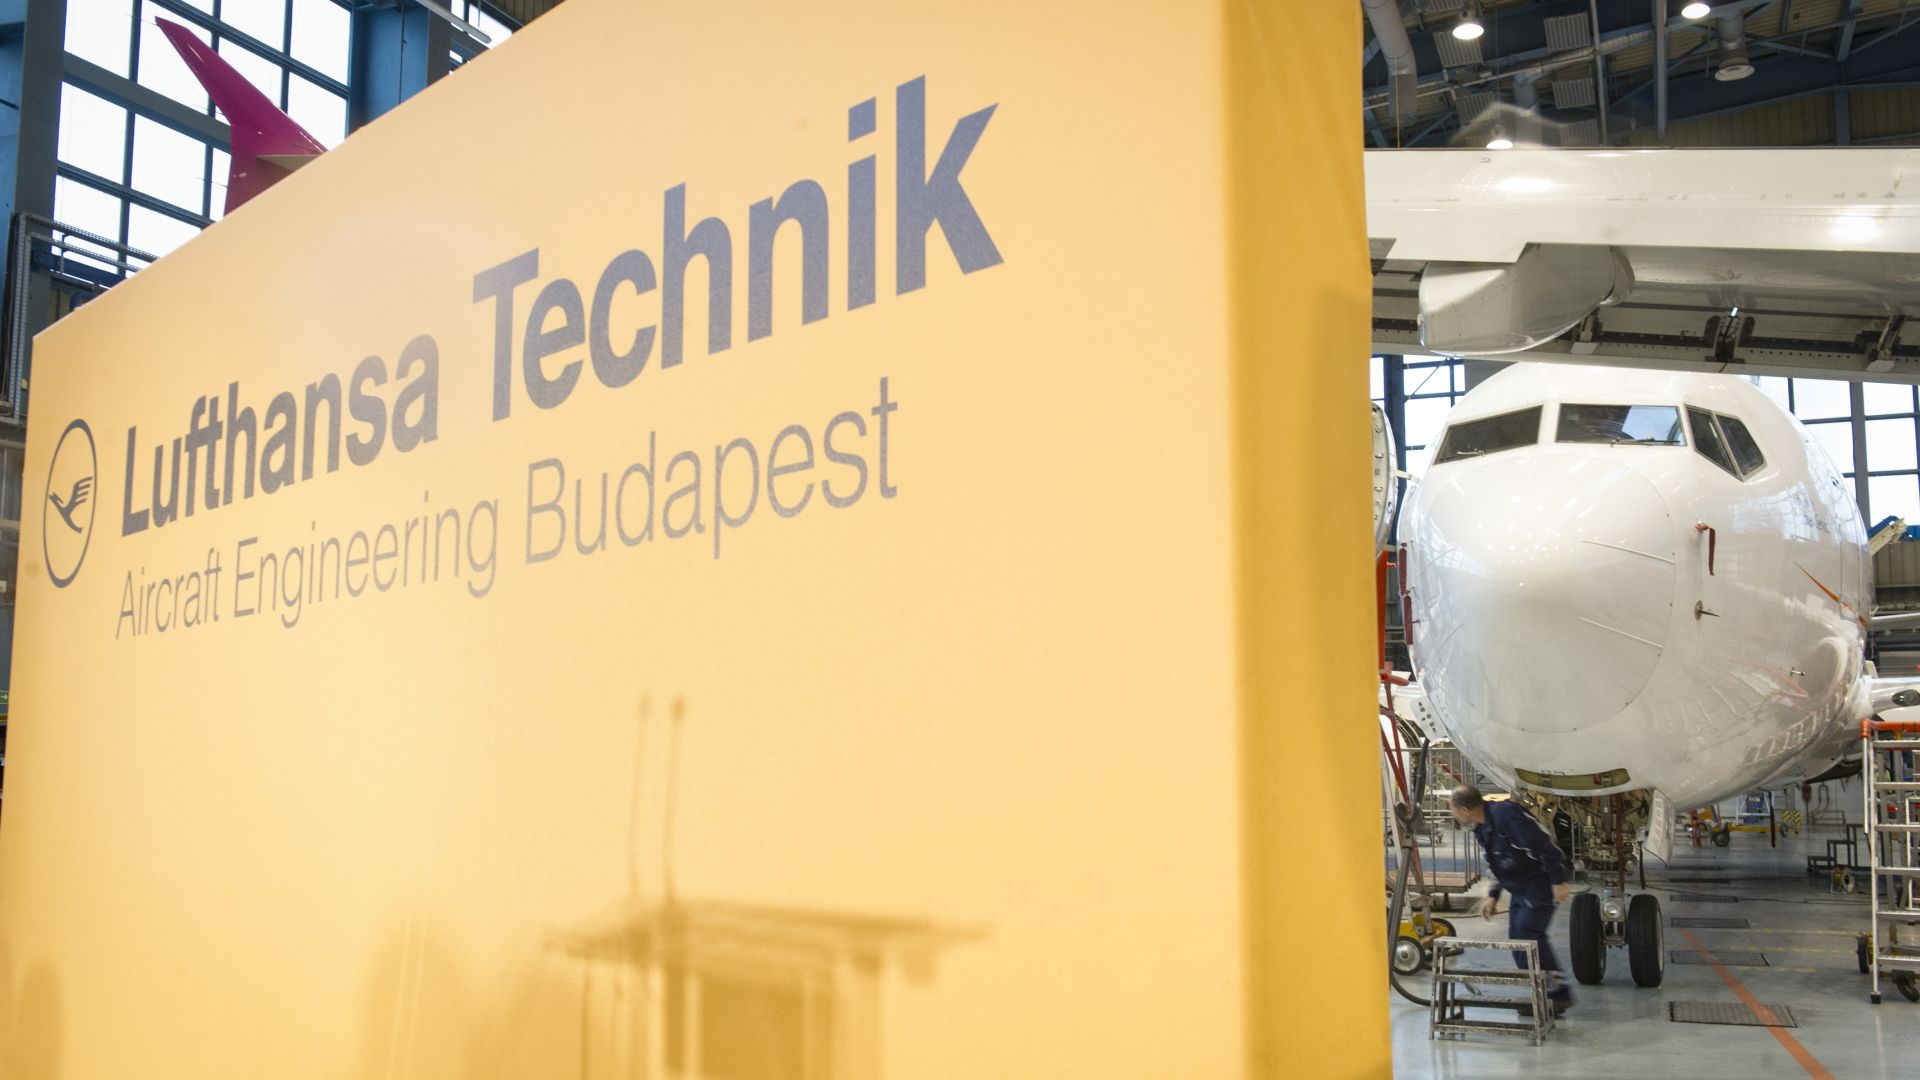 Lufthansa Technik opened a new aircraft engineering centre in Budapest